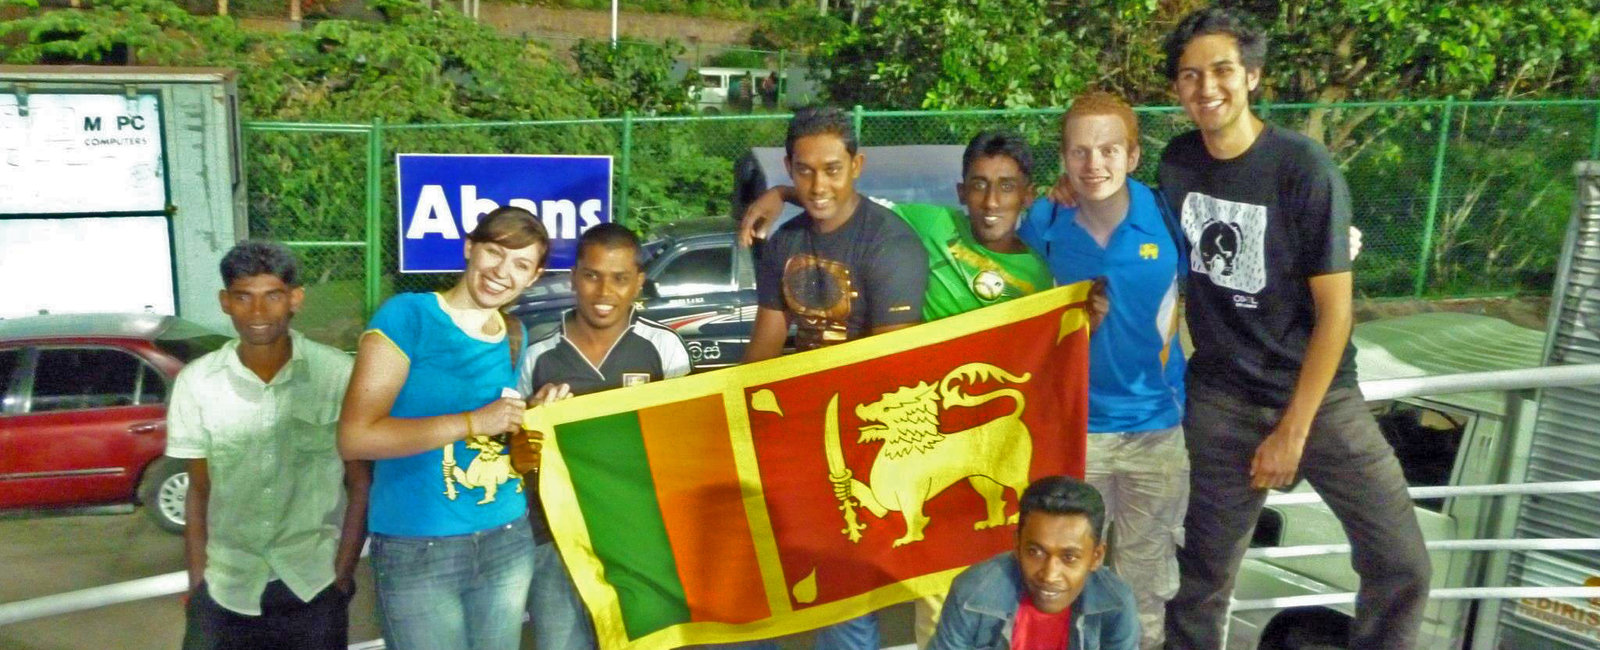 Clare Andrews - Medical Electives in Sri Lanka Kandy